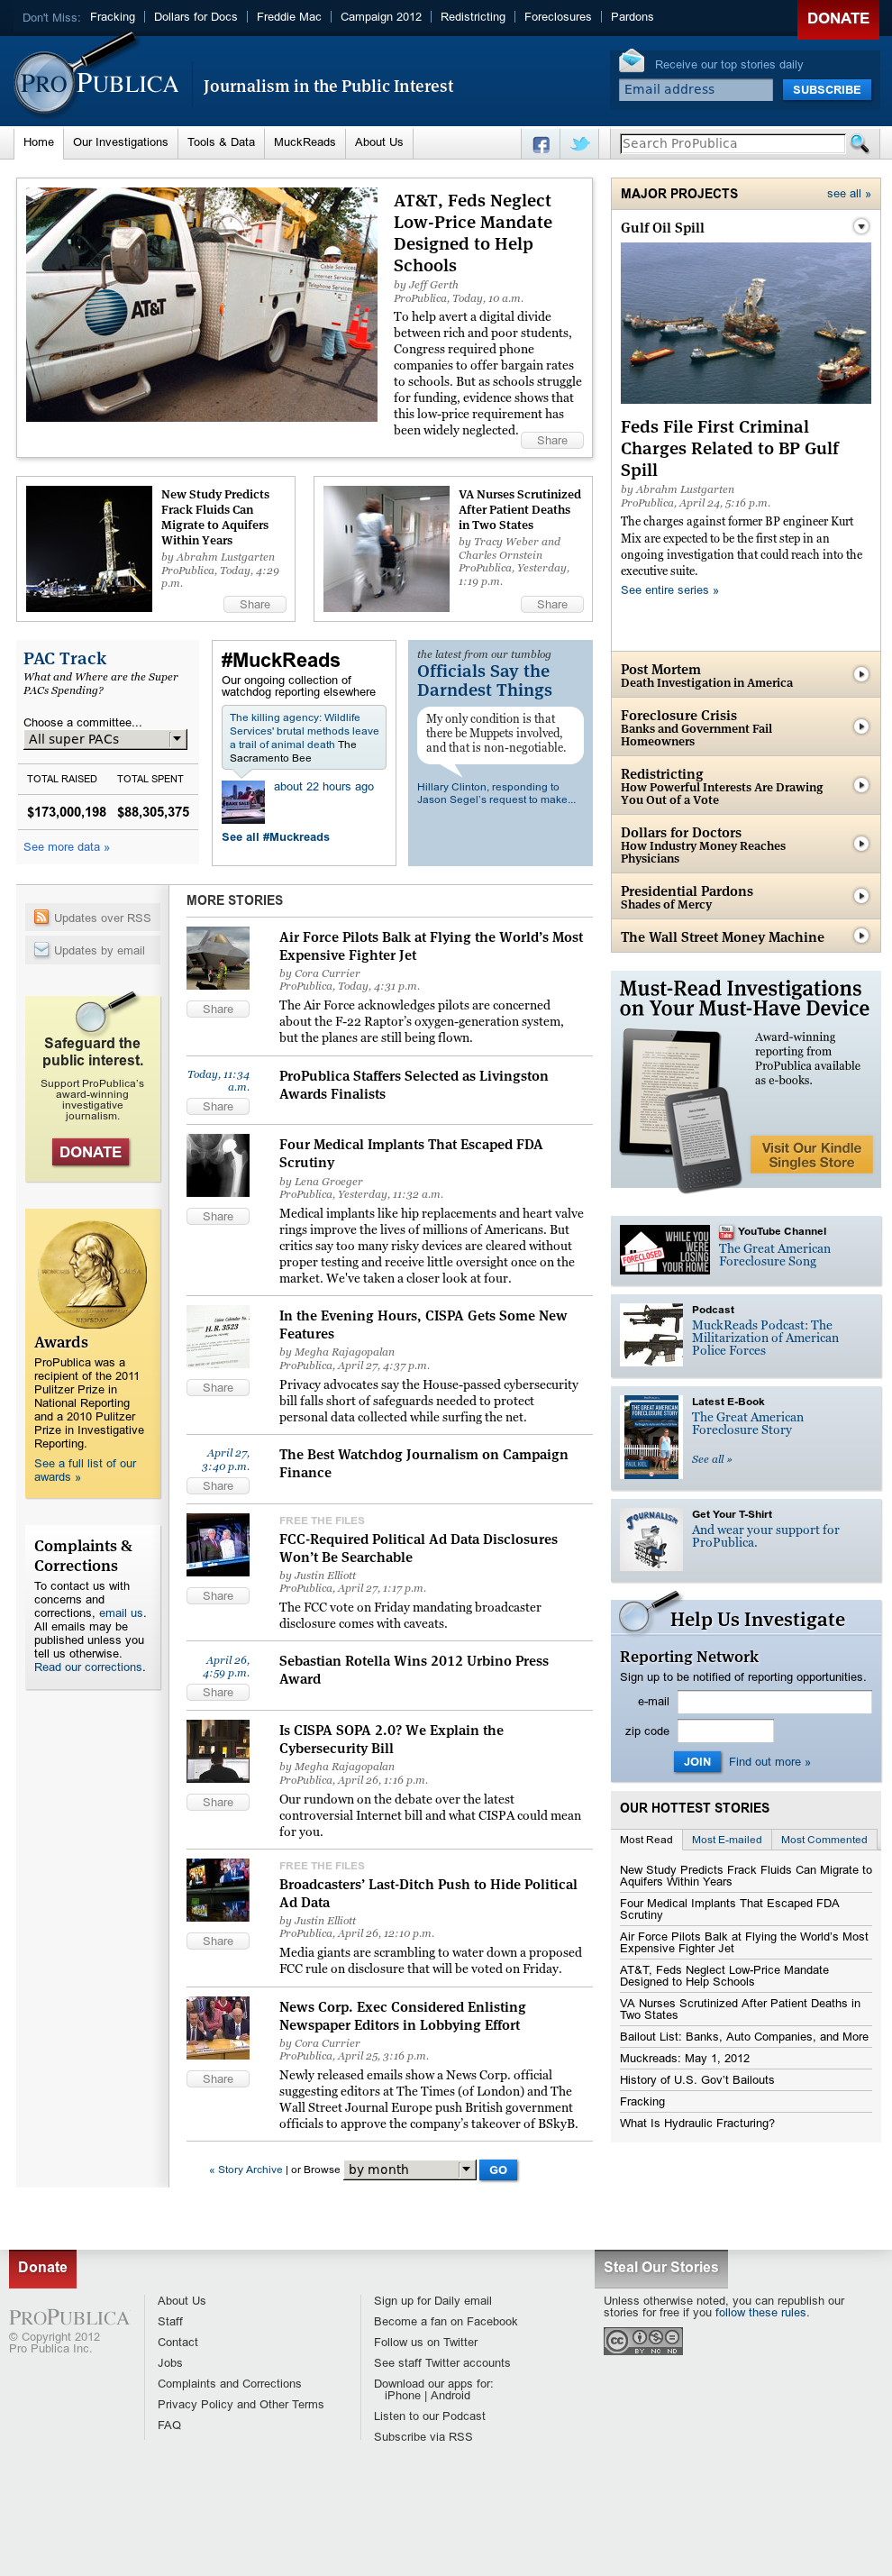 ProPublica at Wednesday May 2, 2012, 3:10 a.m. UTC